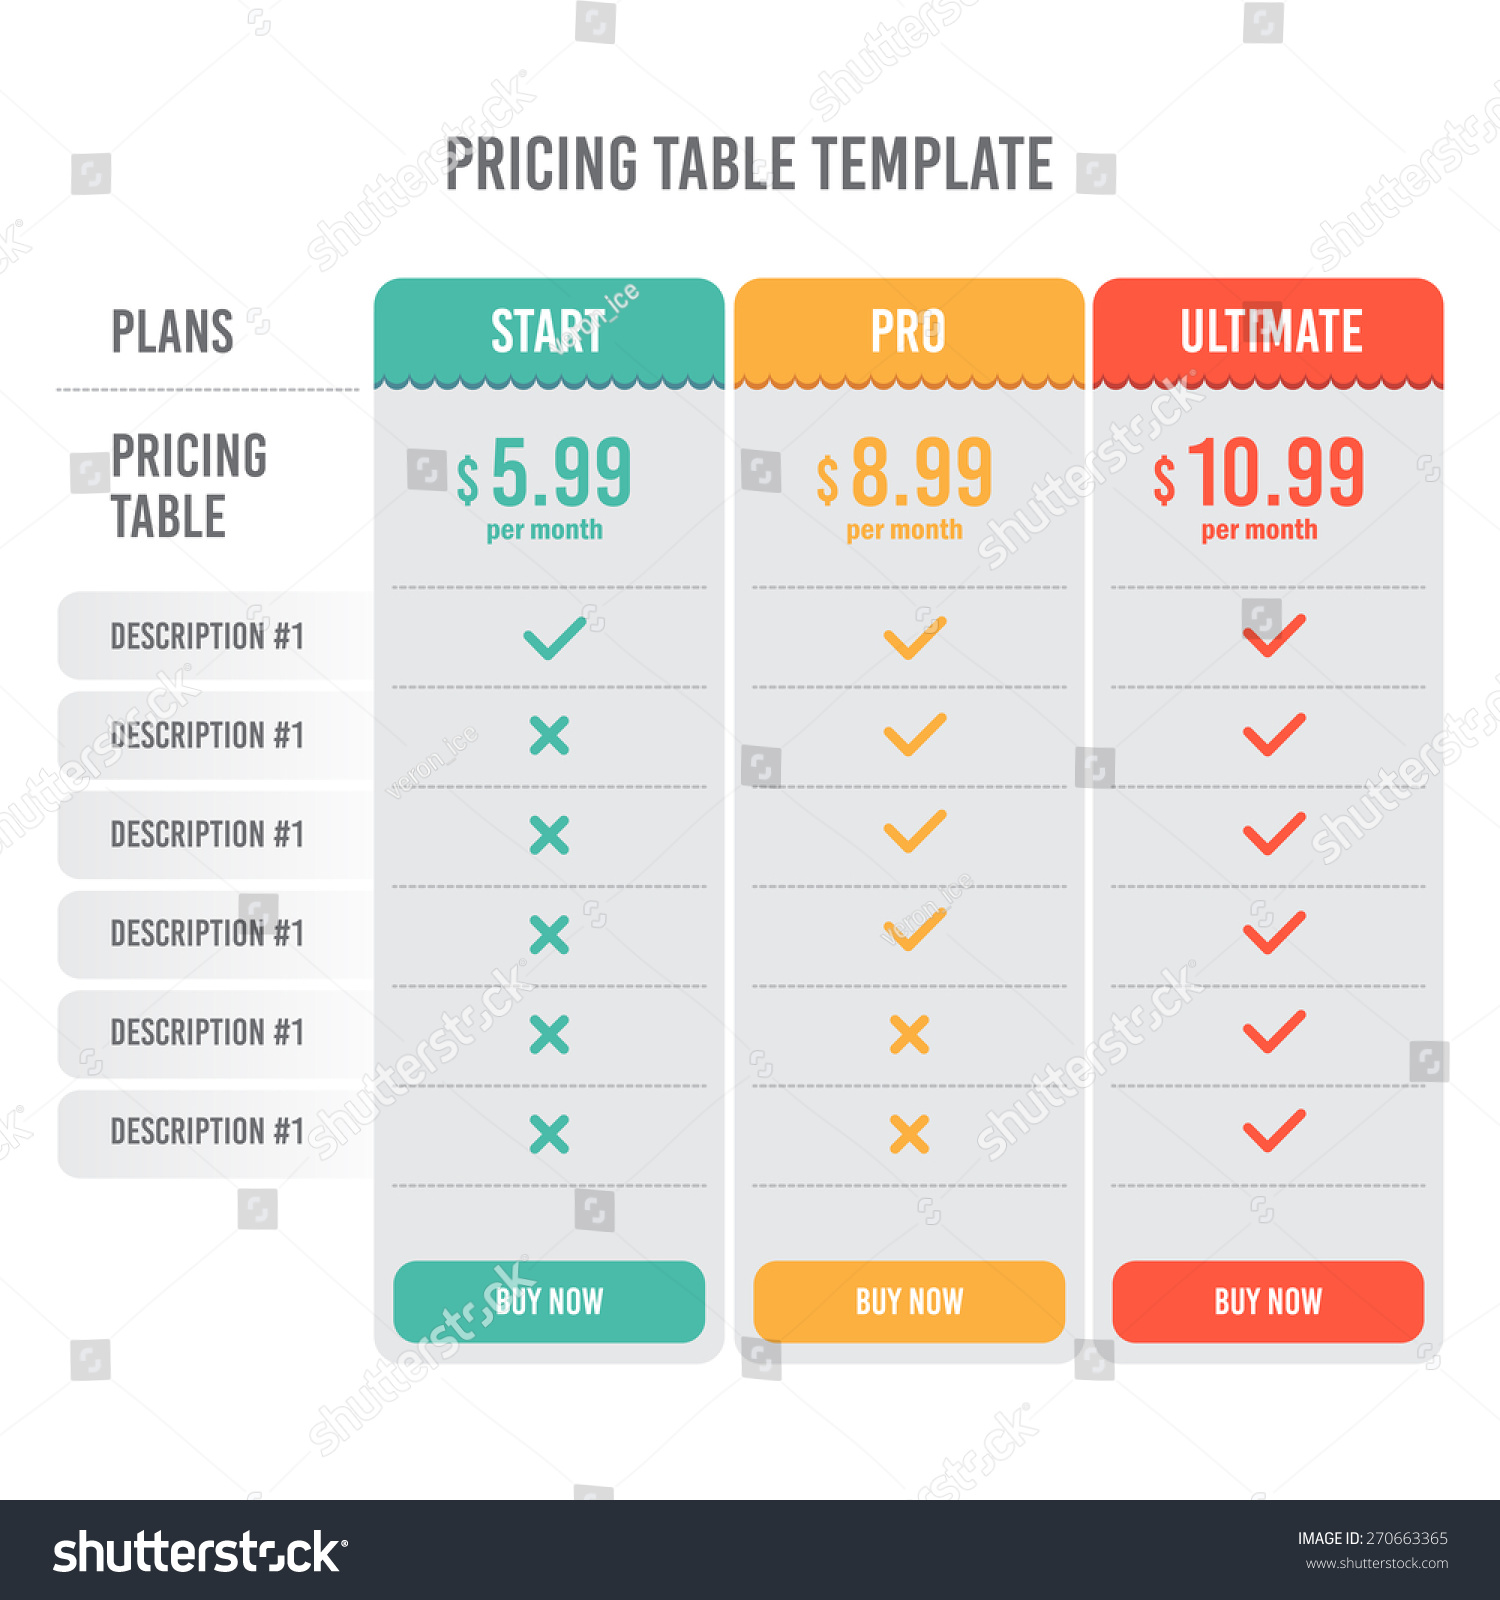 Pricing Plan: Pricing Table Template With Three Plan Type